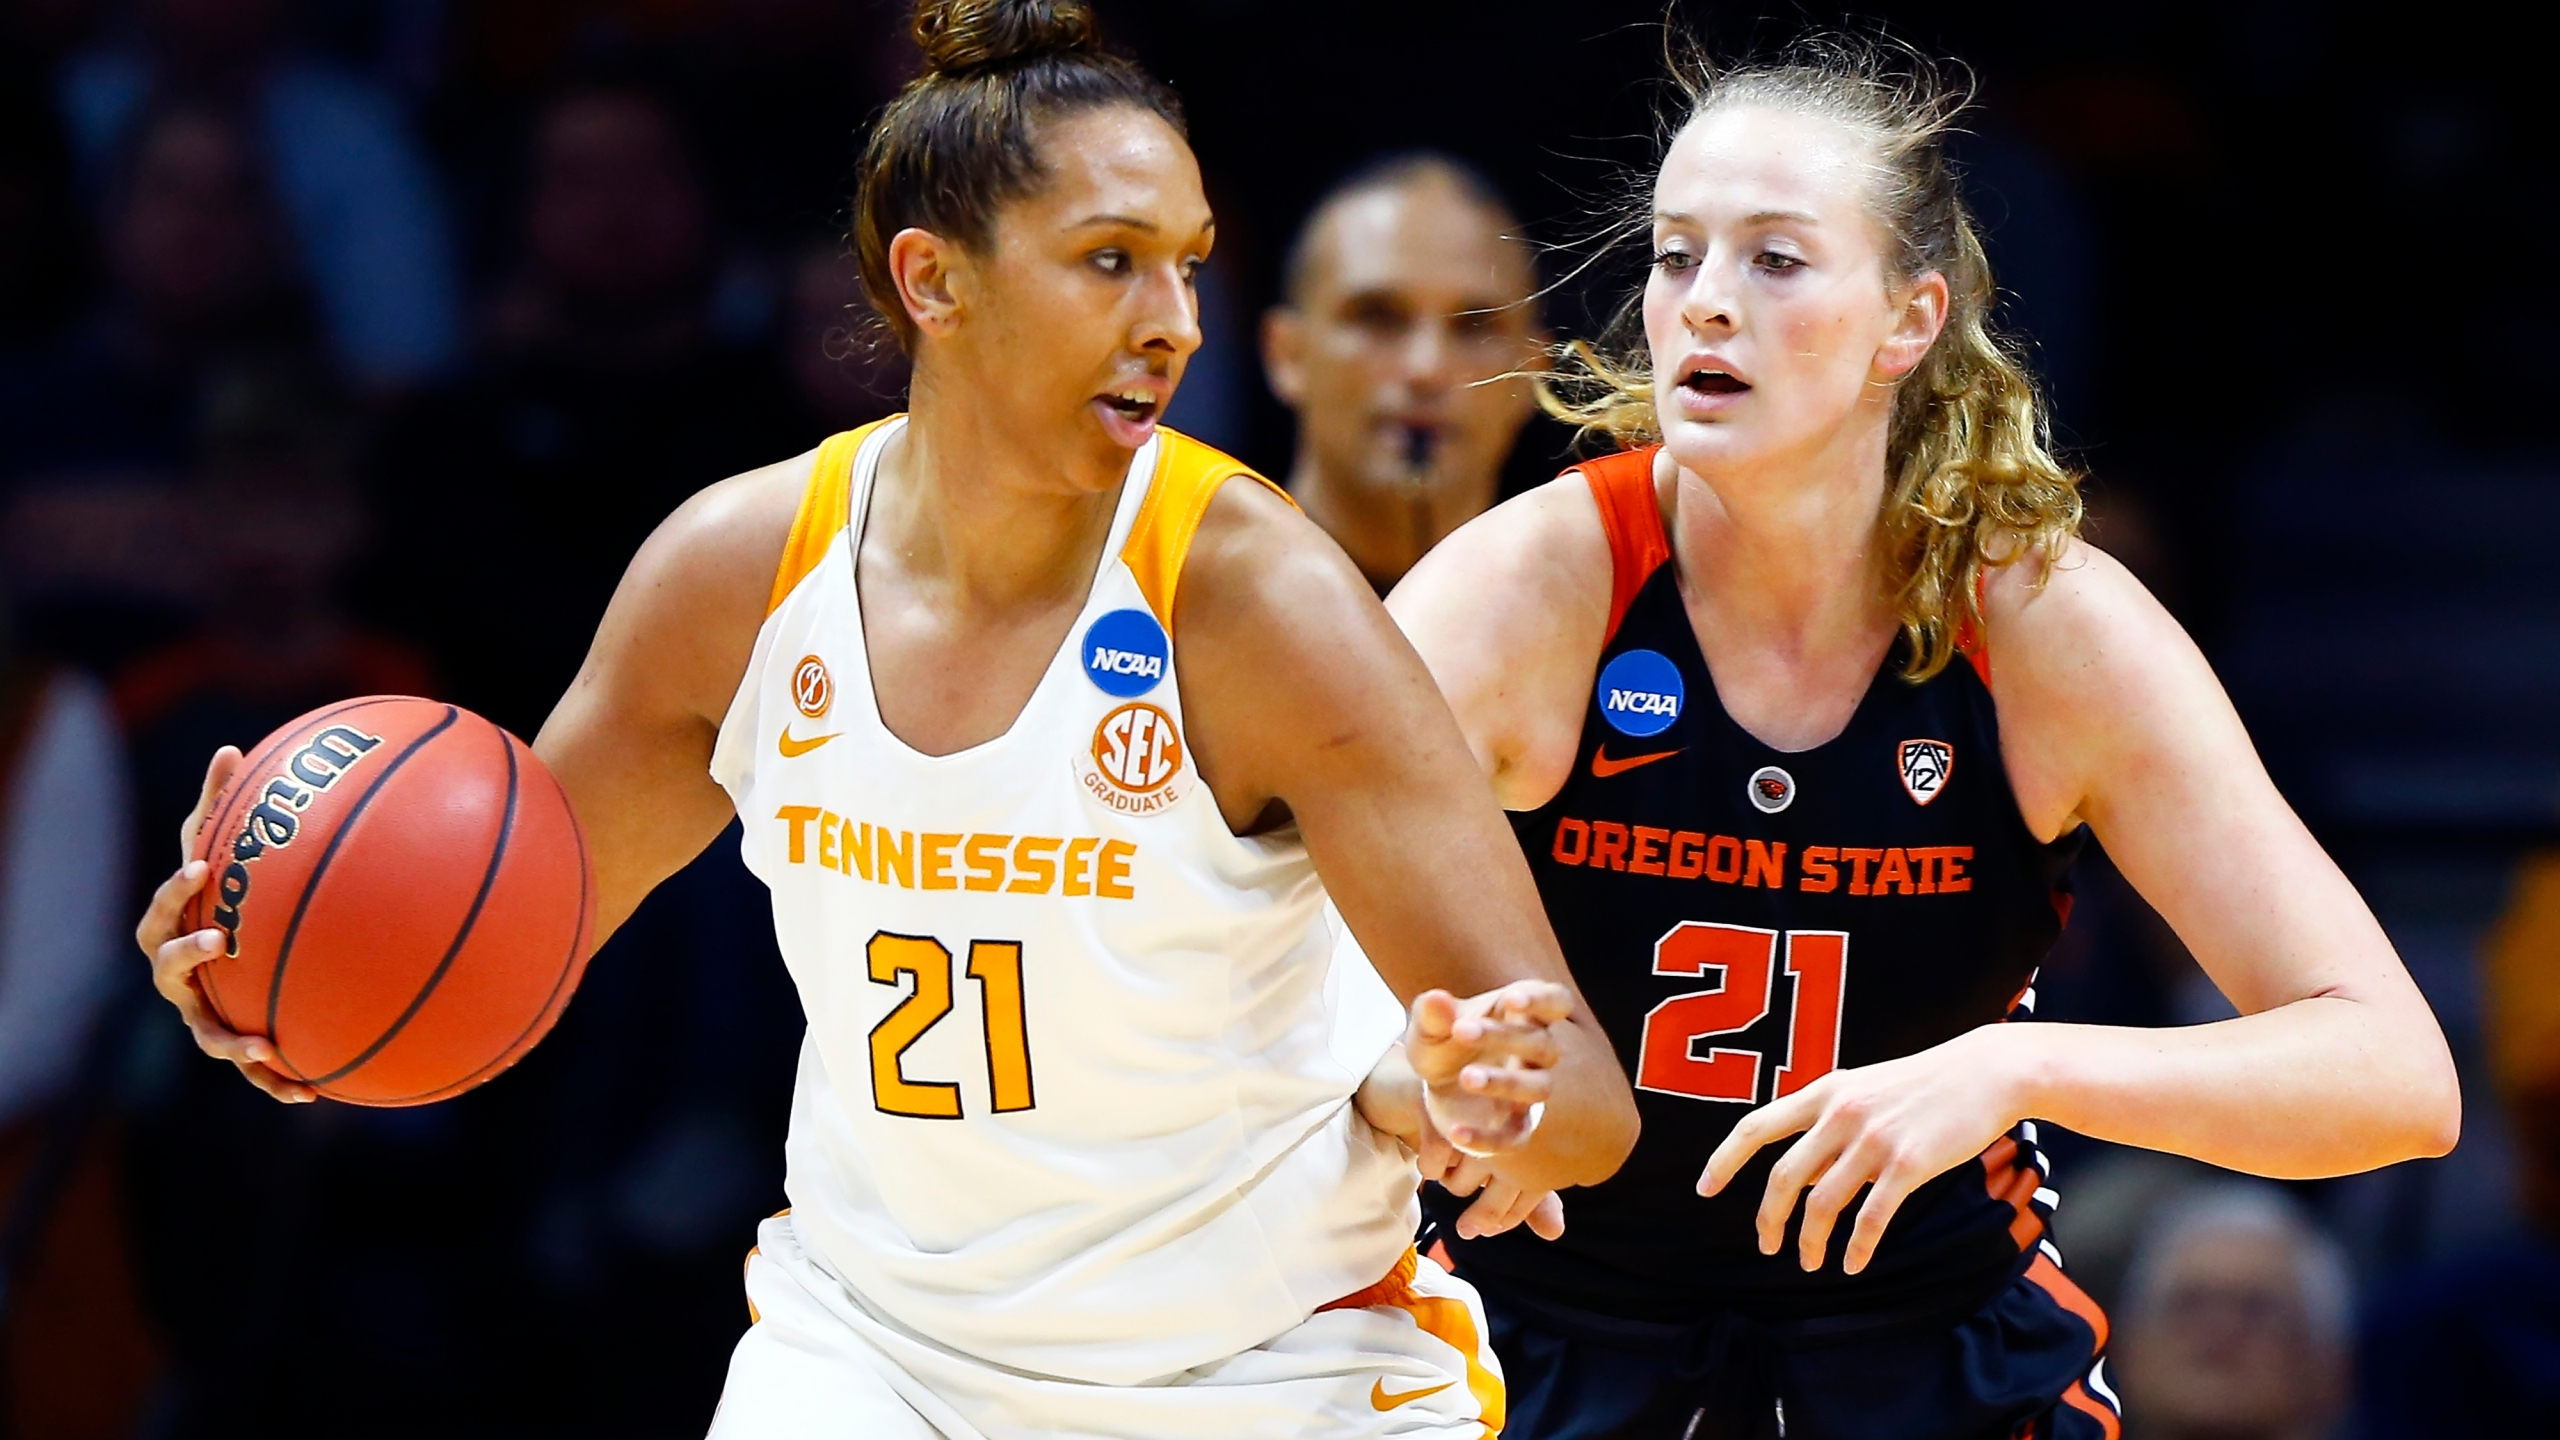 NCAA_Oregon_State_Tennessee_Basketball_47346-159532.jpg91235798